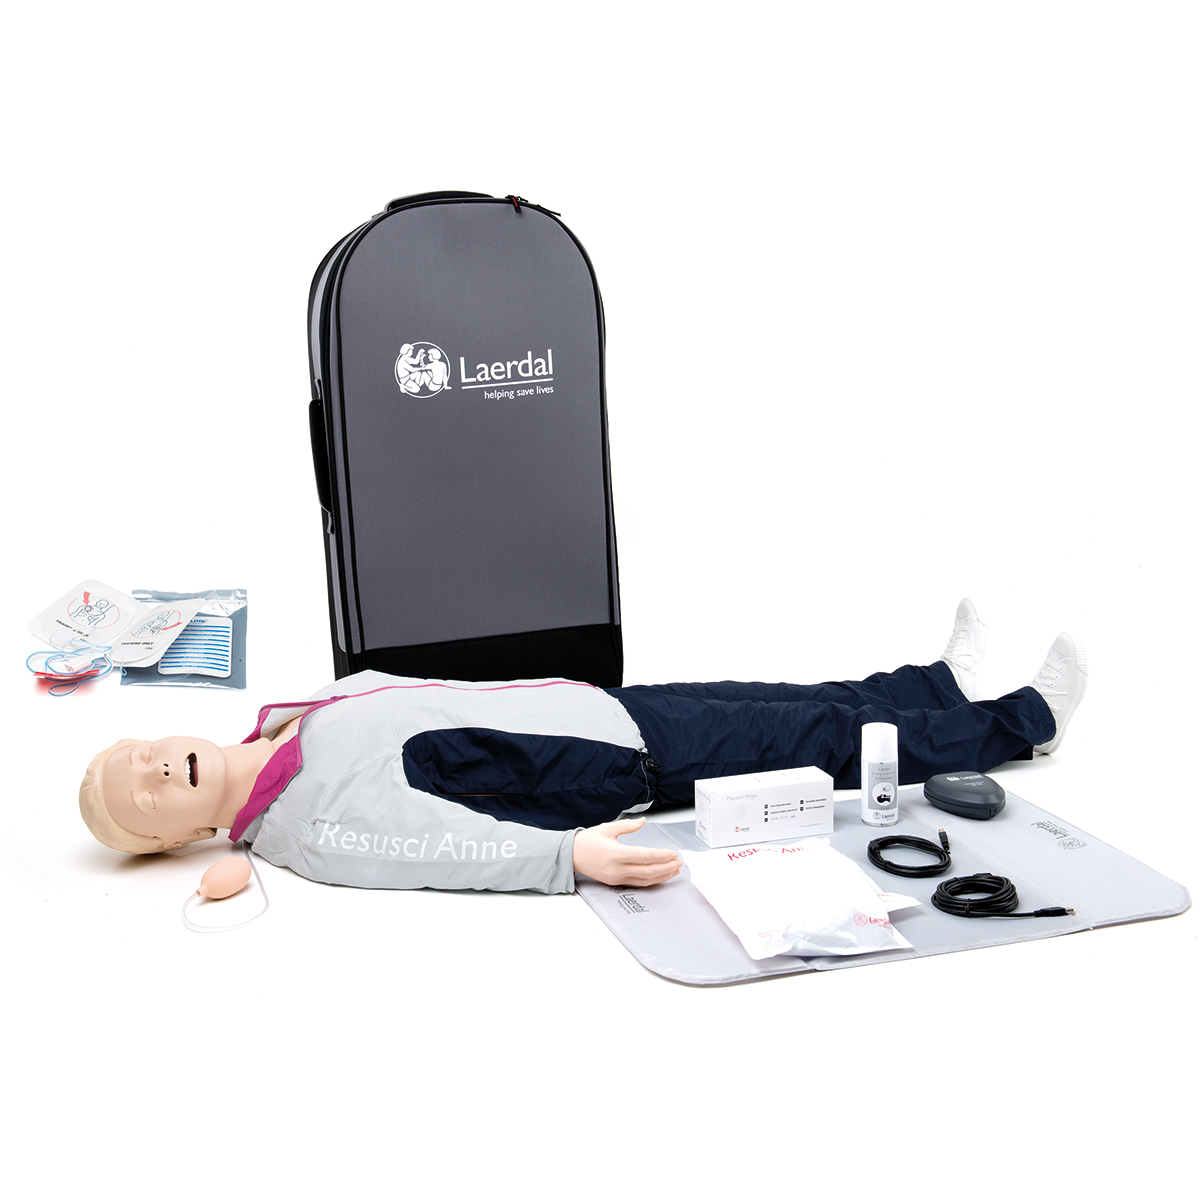 Laerdal Resusci® Anne QCPR AED Airway Head Full Body with Trolley Case